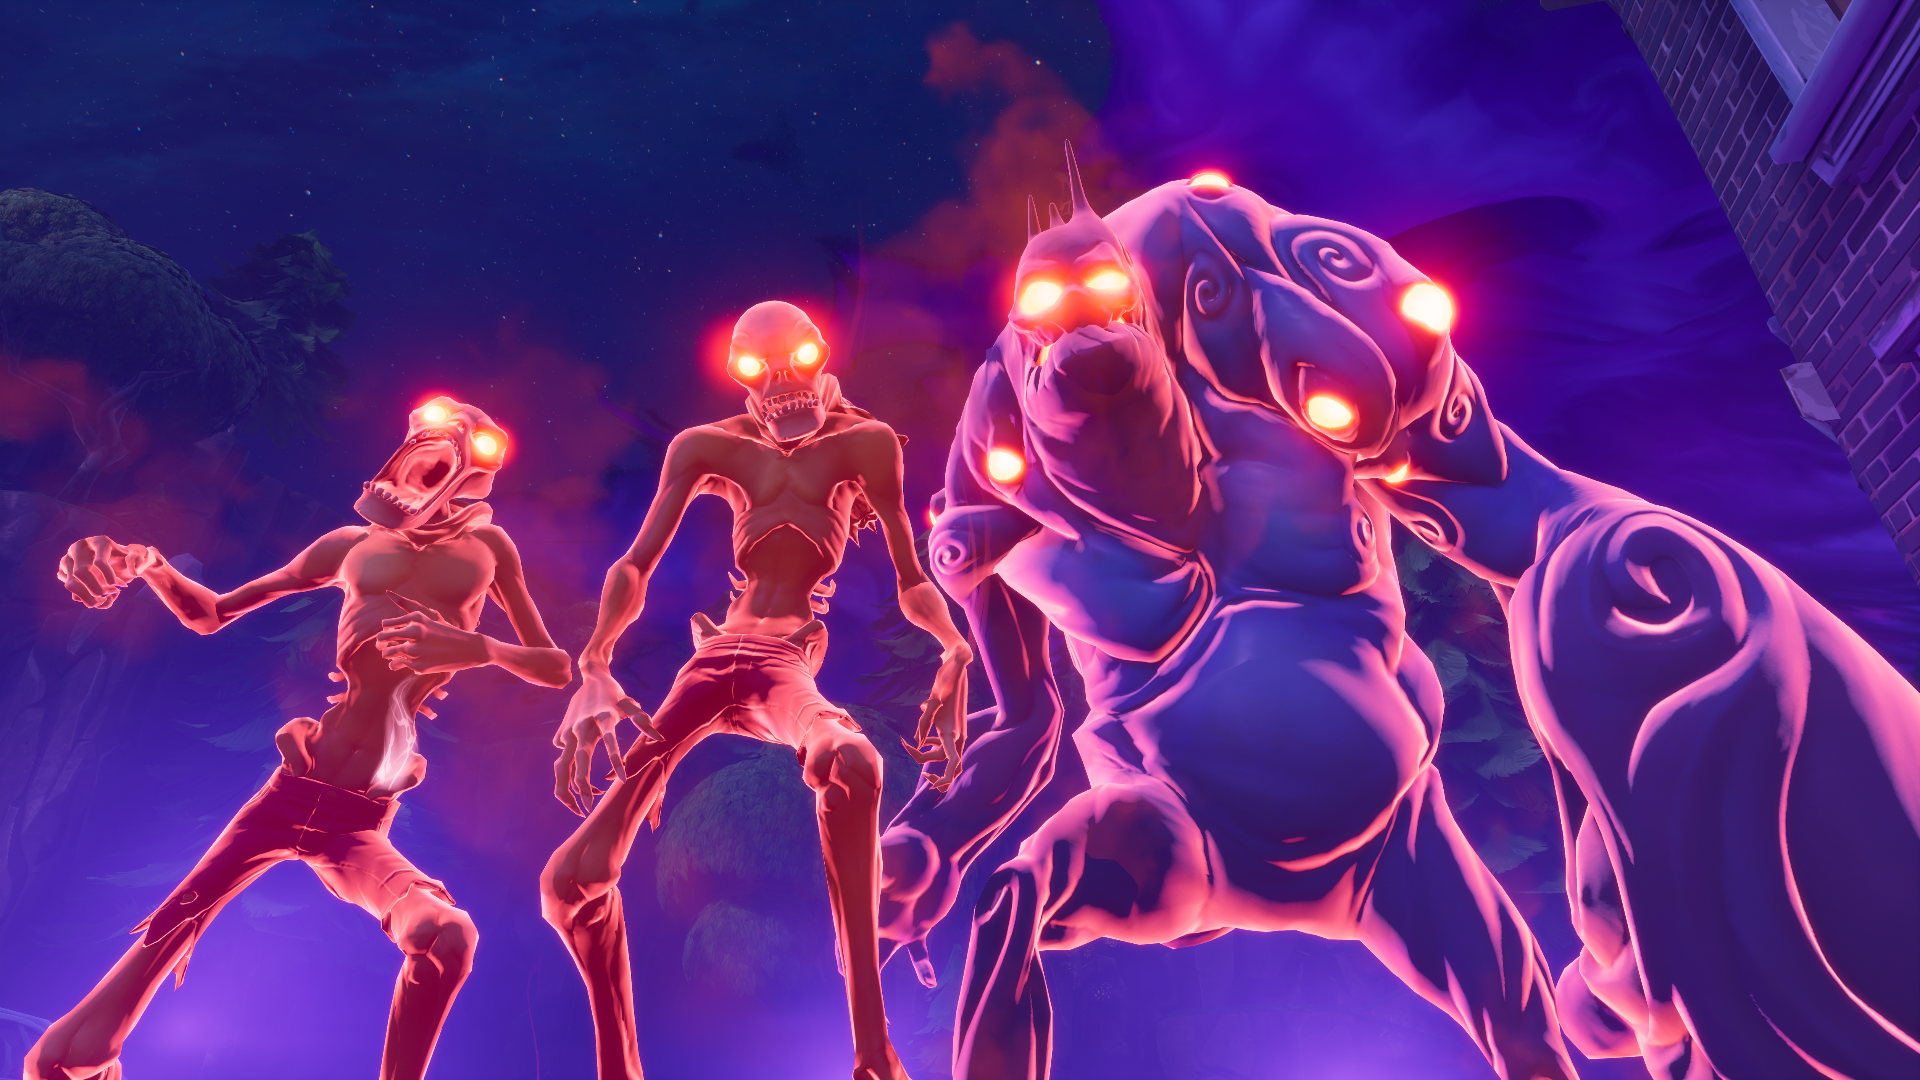 Could fortnite 39 s save the world mode be next on epic 39 s - Fortnite save the world wallpaper ...